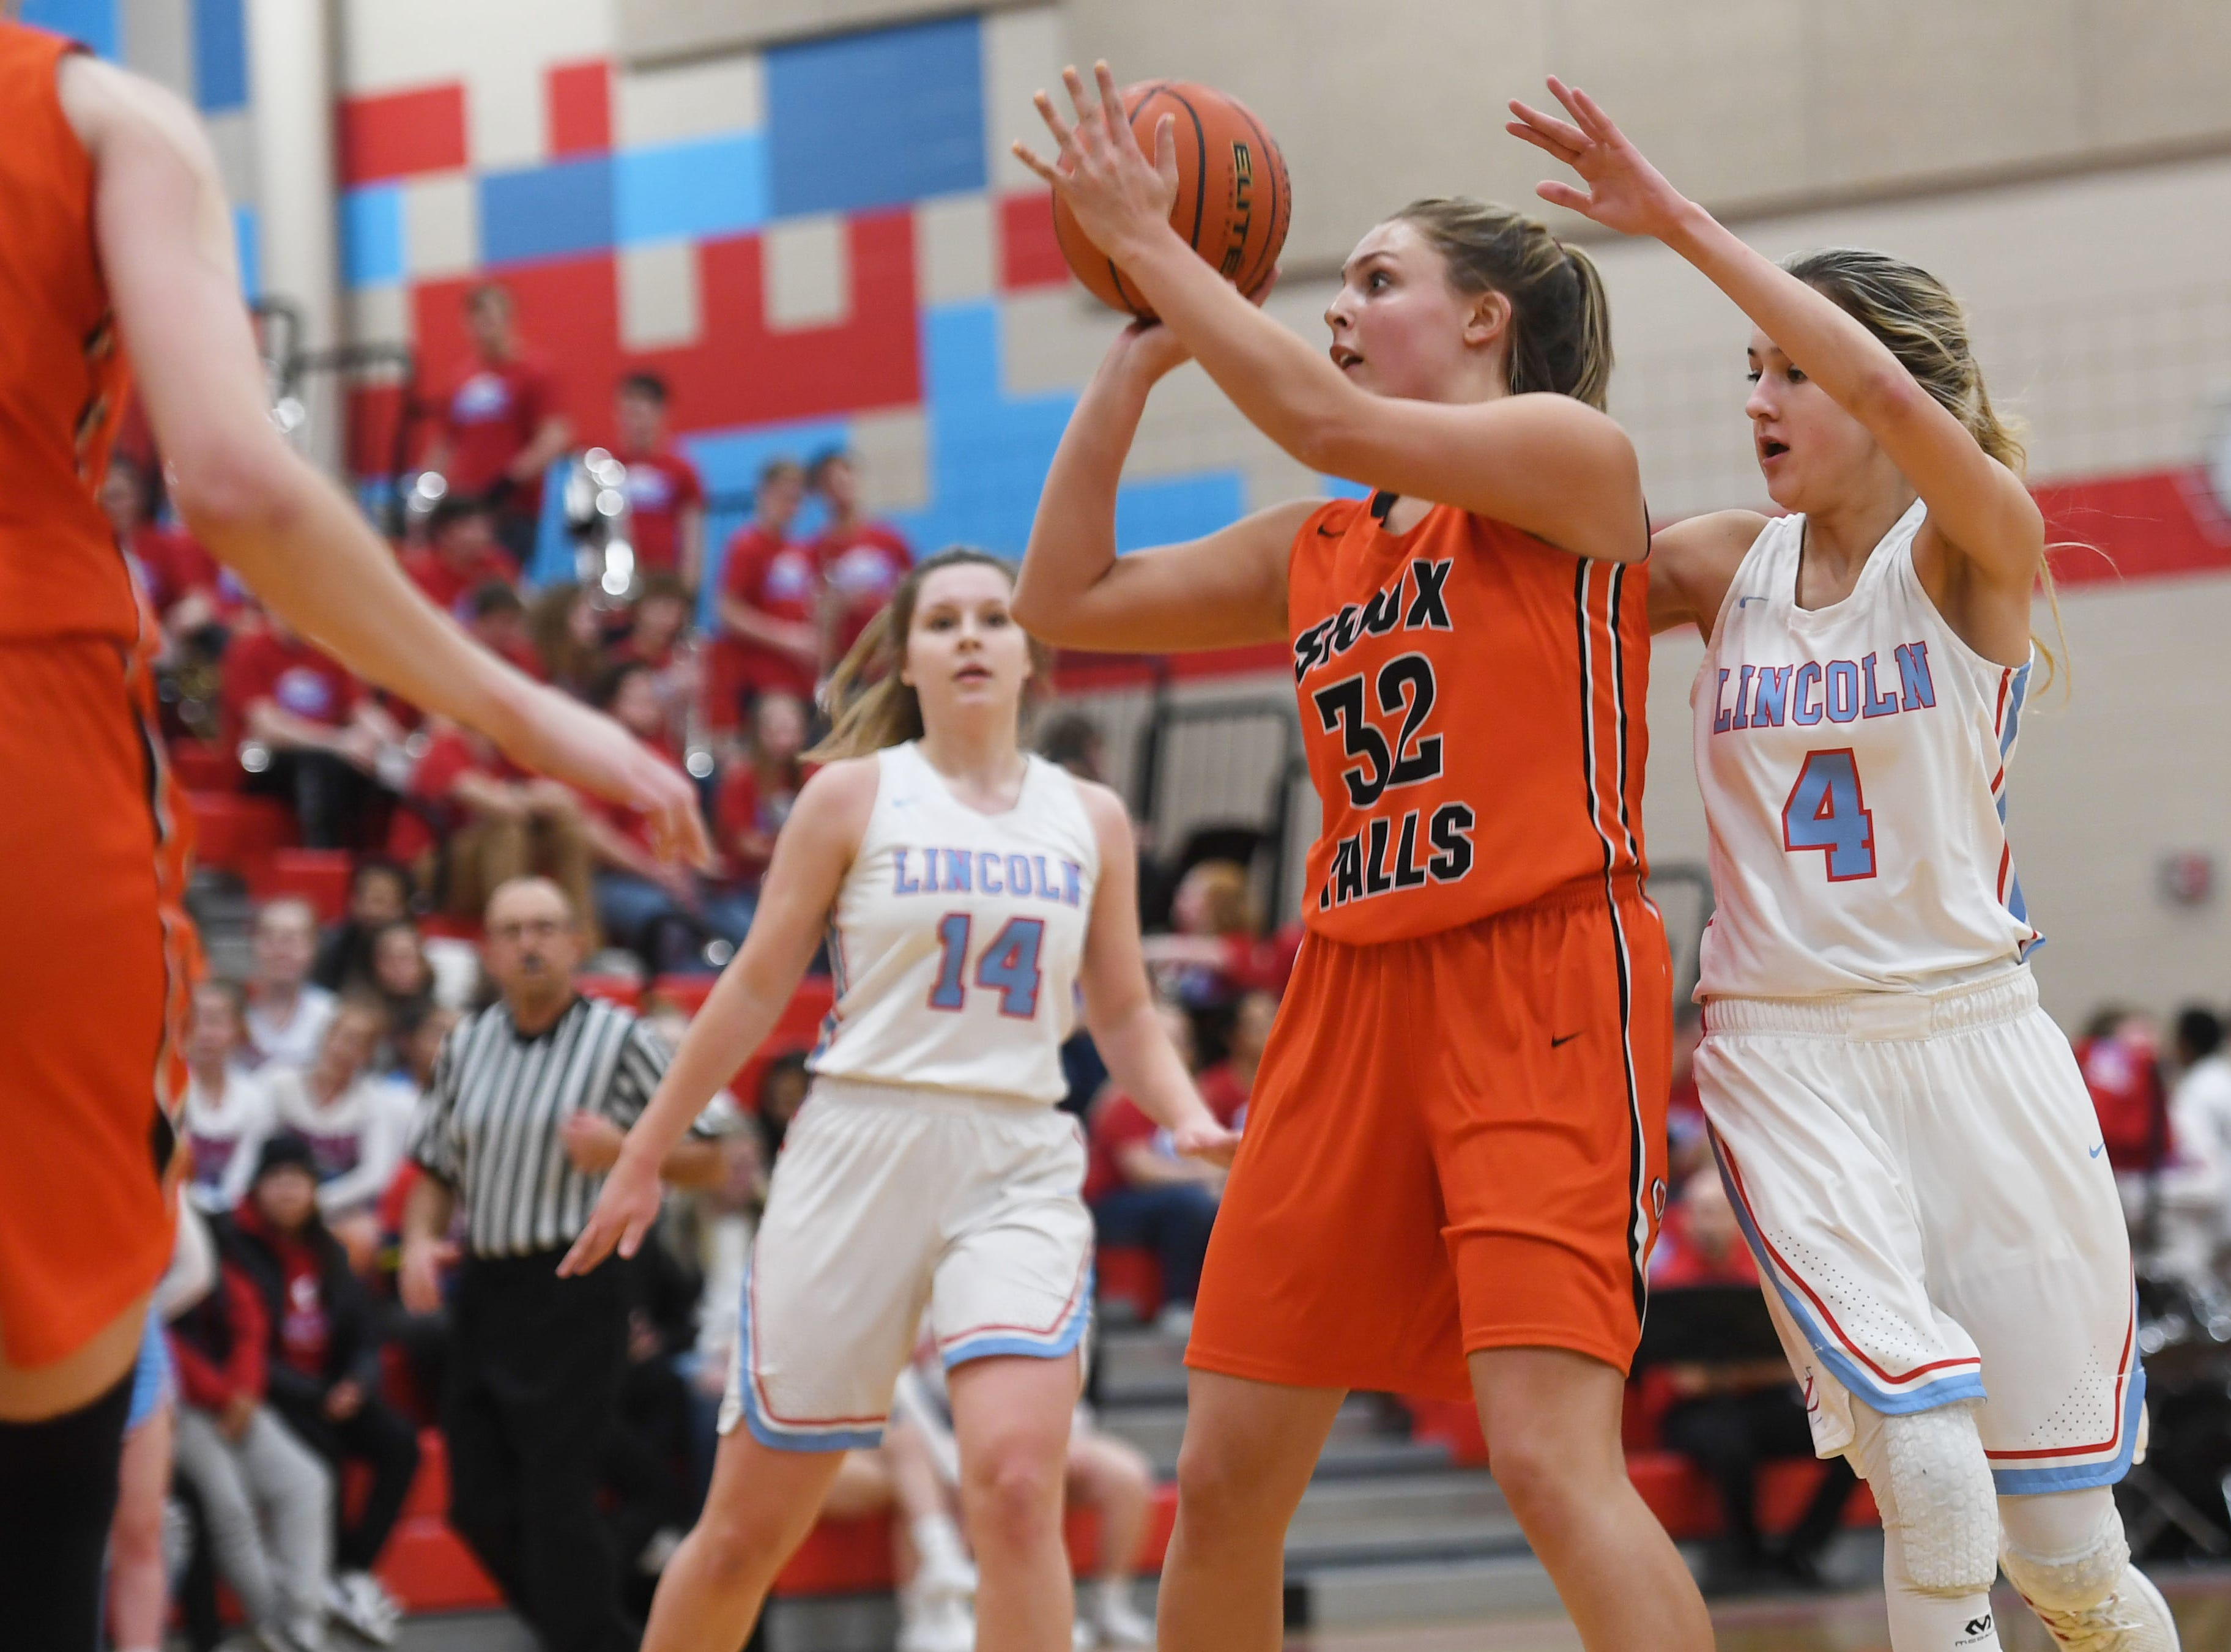 Washington's Peyton Rymerson attempts to take a shot against Lincoln defense during the game Thursday, Jan. 24, at Lincoln. Lincoln won 63-62 against Washington.